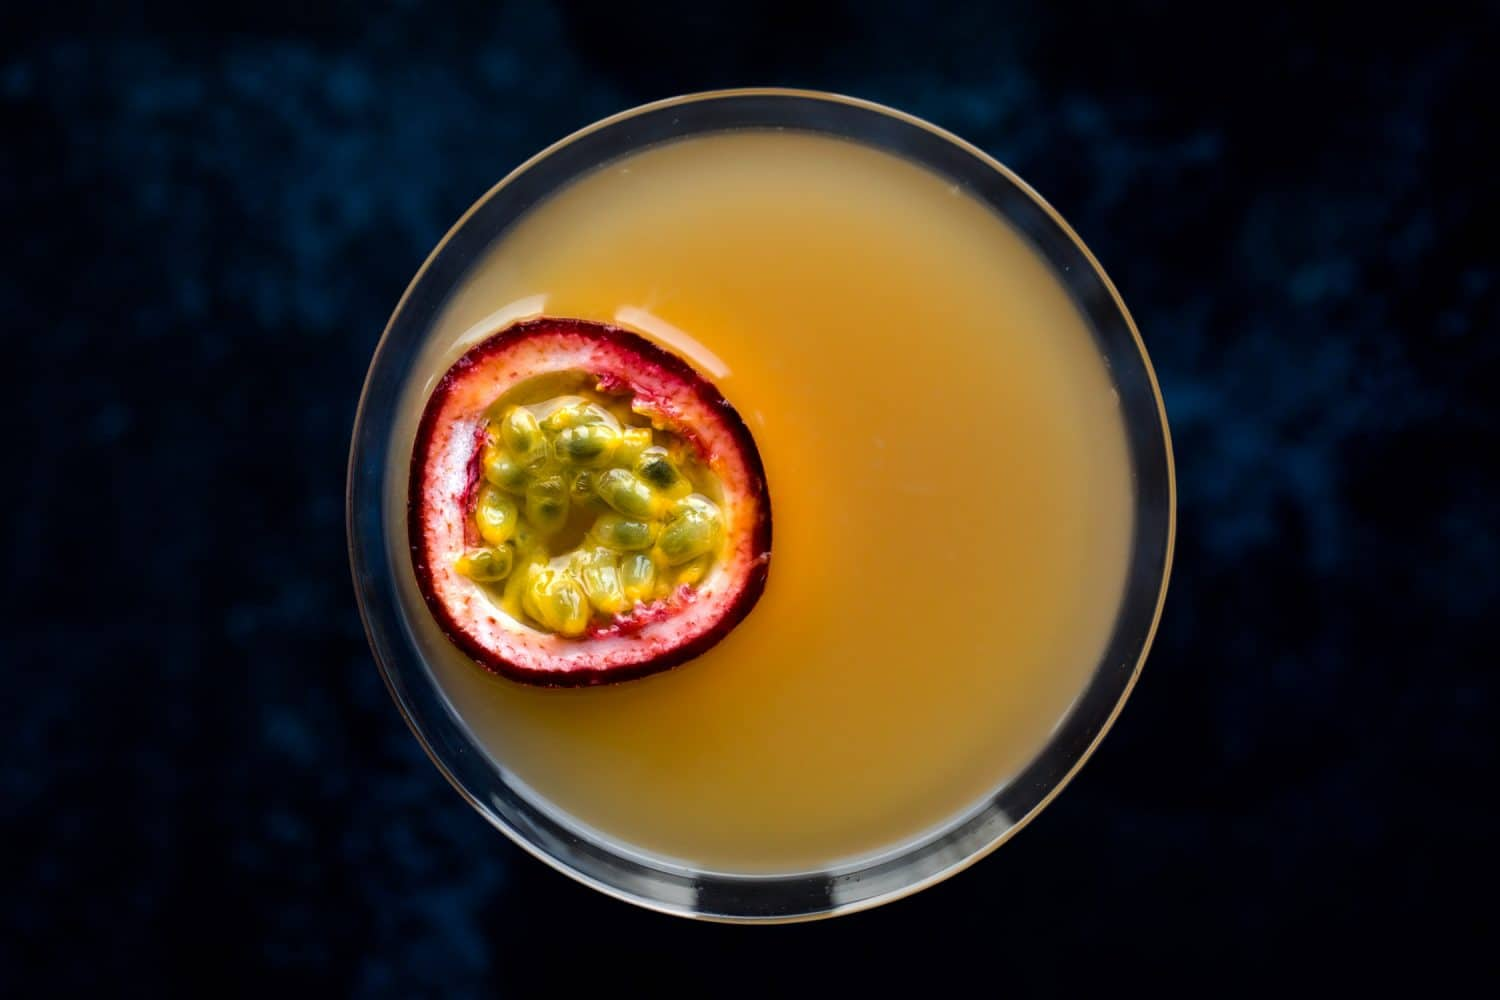 Overhead view of a passion fruit martini with a piece of passion fruit for garnish.